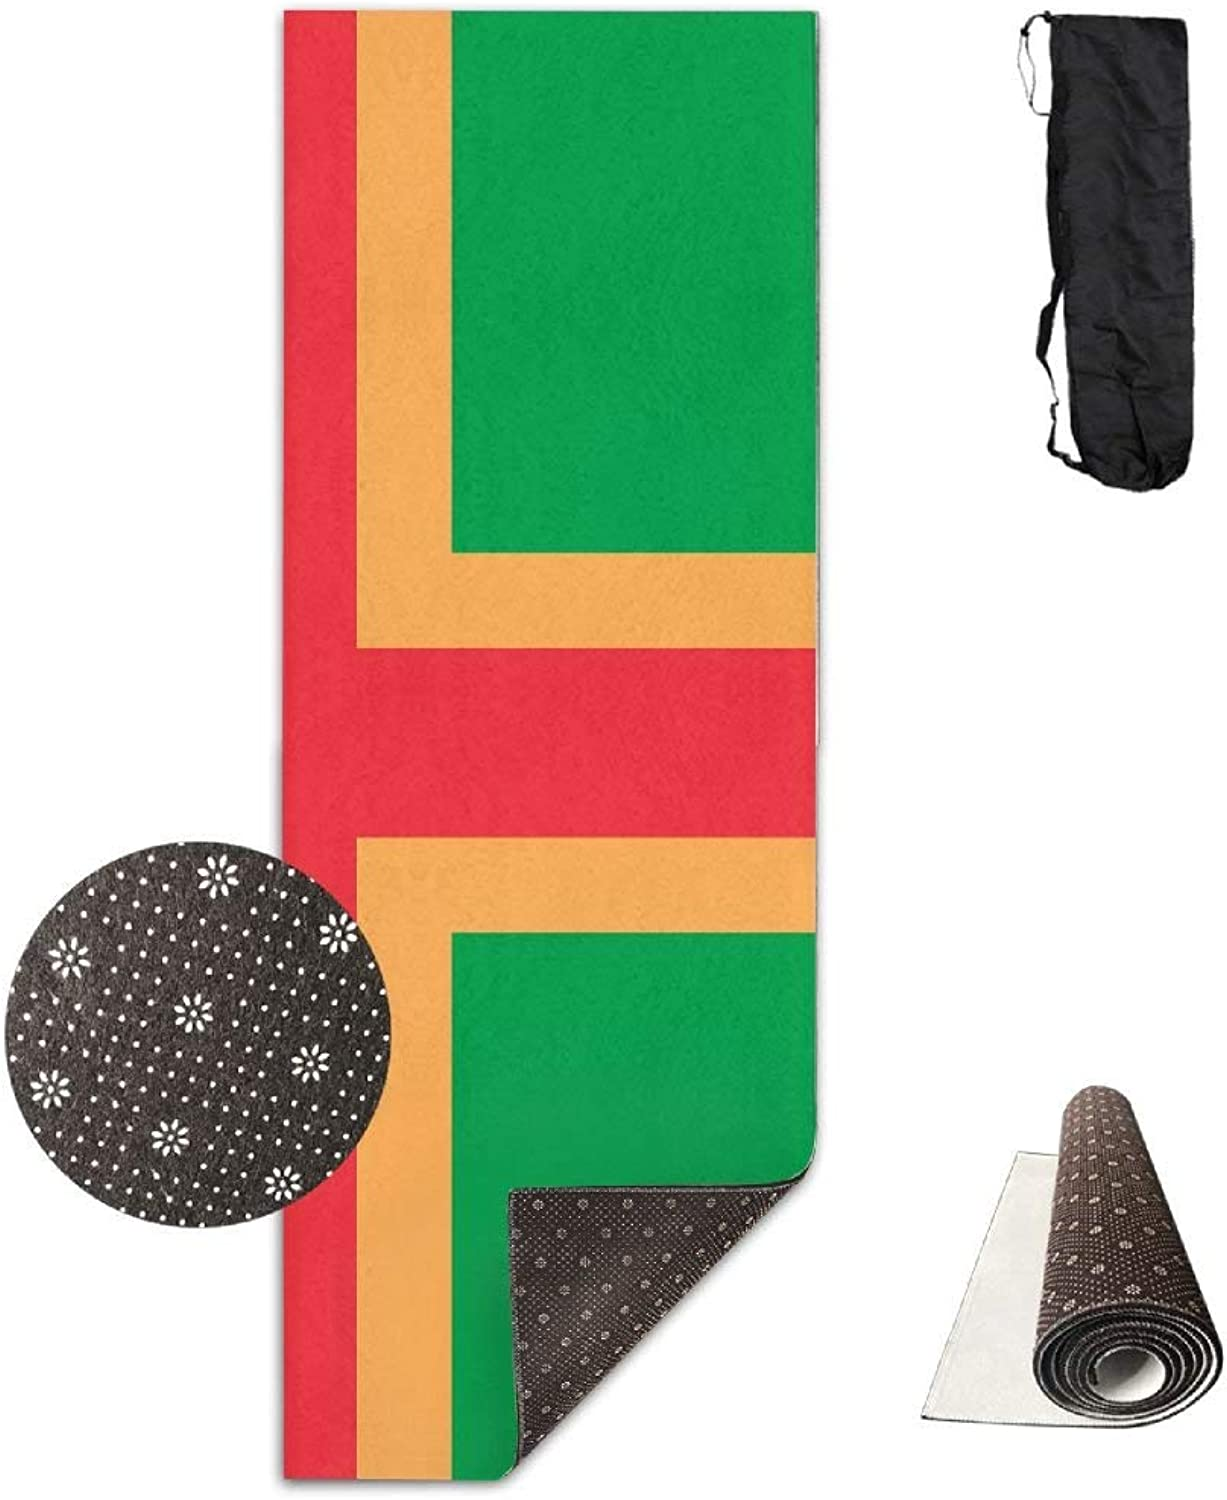 Norway  Zanzibar Heritage Flag Yoga Mat  Advanced Yoga Mat  NonSlip Lining  Easy to Clean  LatexFree  Lightweight and Durable  Long 180 Width 61cm